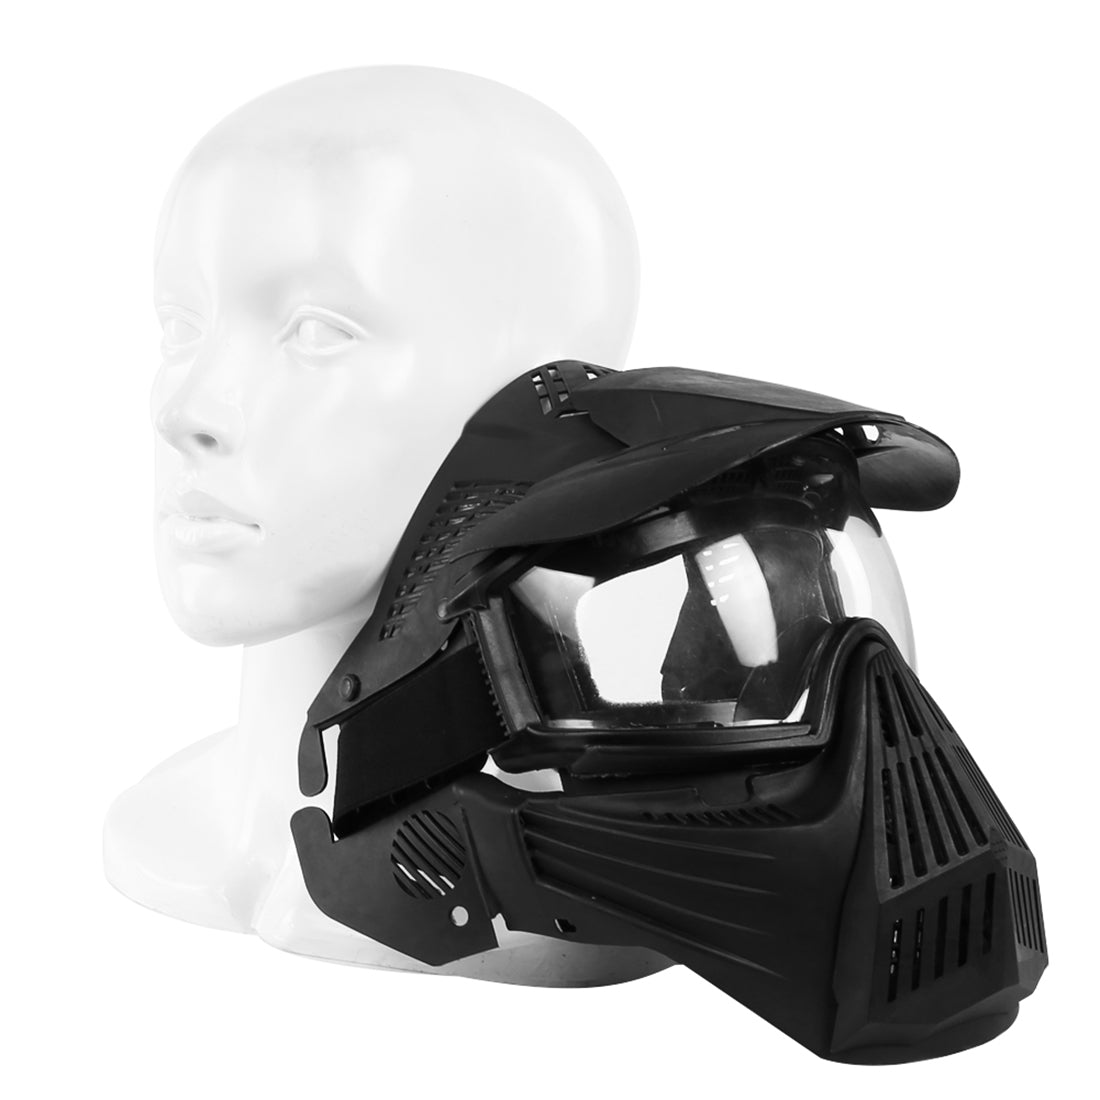 airsoft masks coloring pages | WST Airsoft Mask Adjustable Full Face Tactical Mask with ...